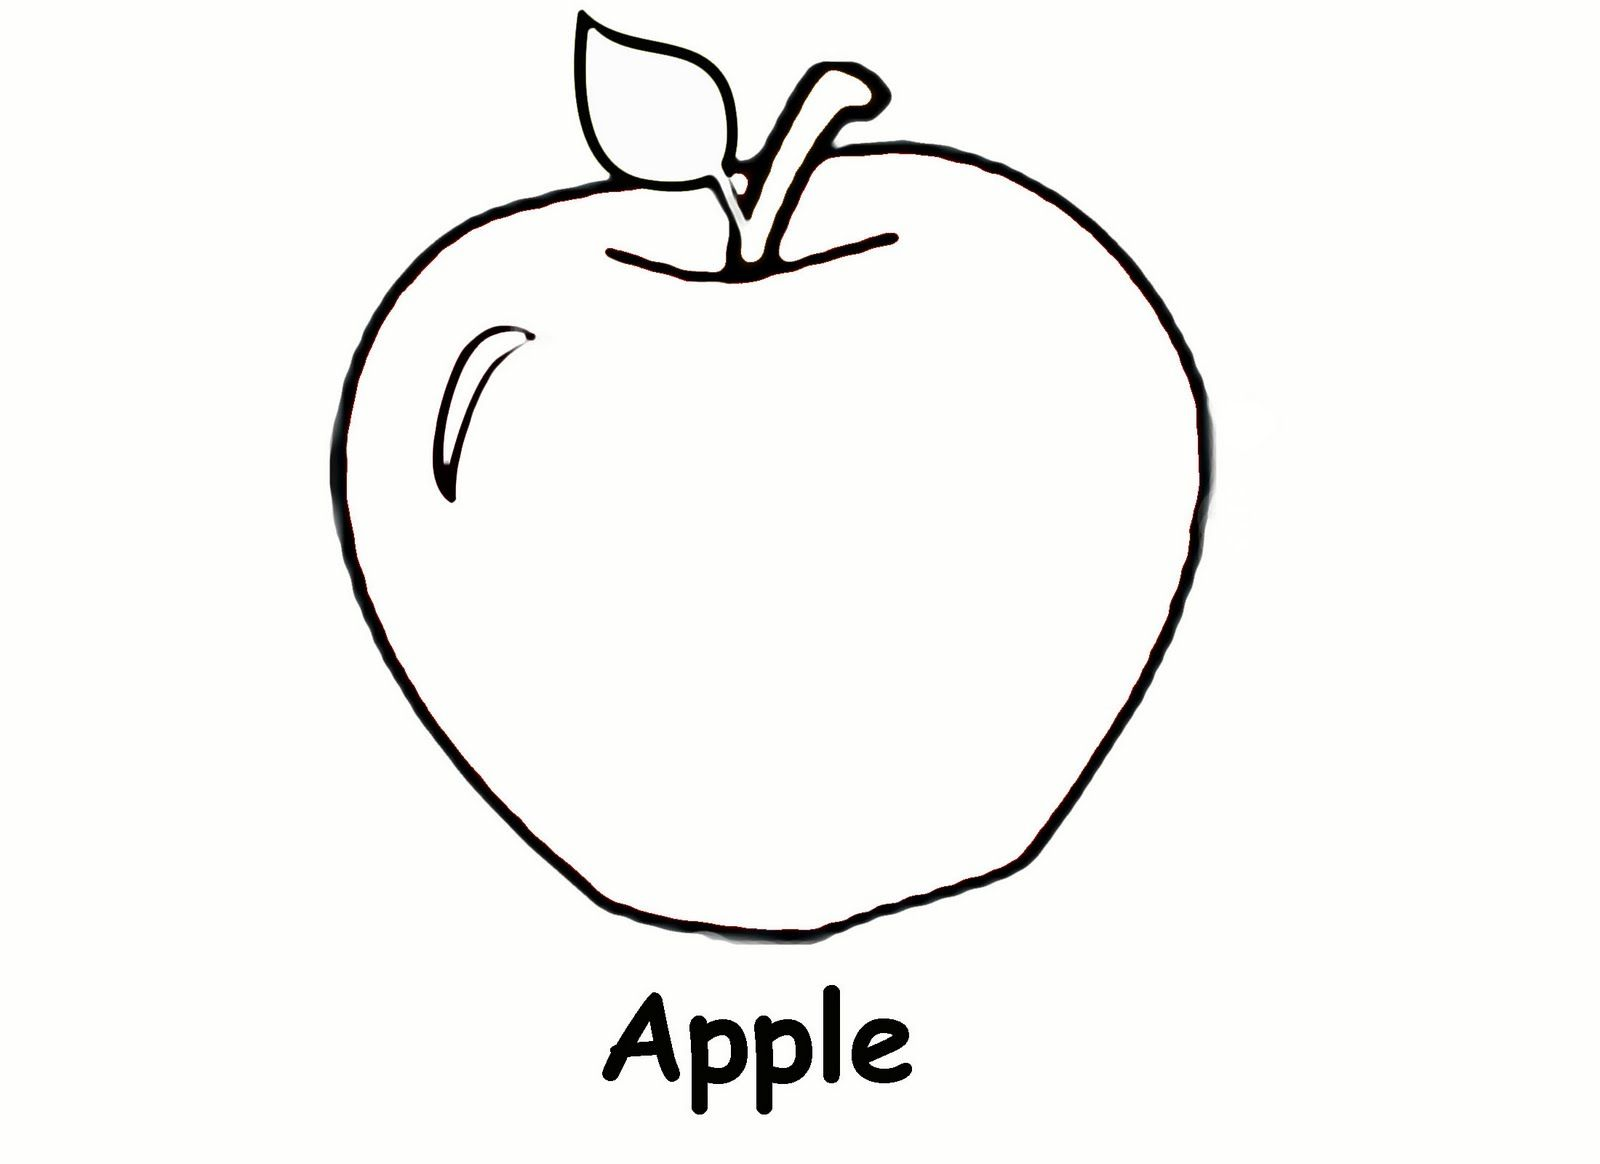 Worksheets Preschool Apple Printable Lacing Lines Worksheets Best Free Printable Worksheets